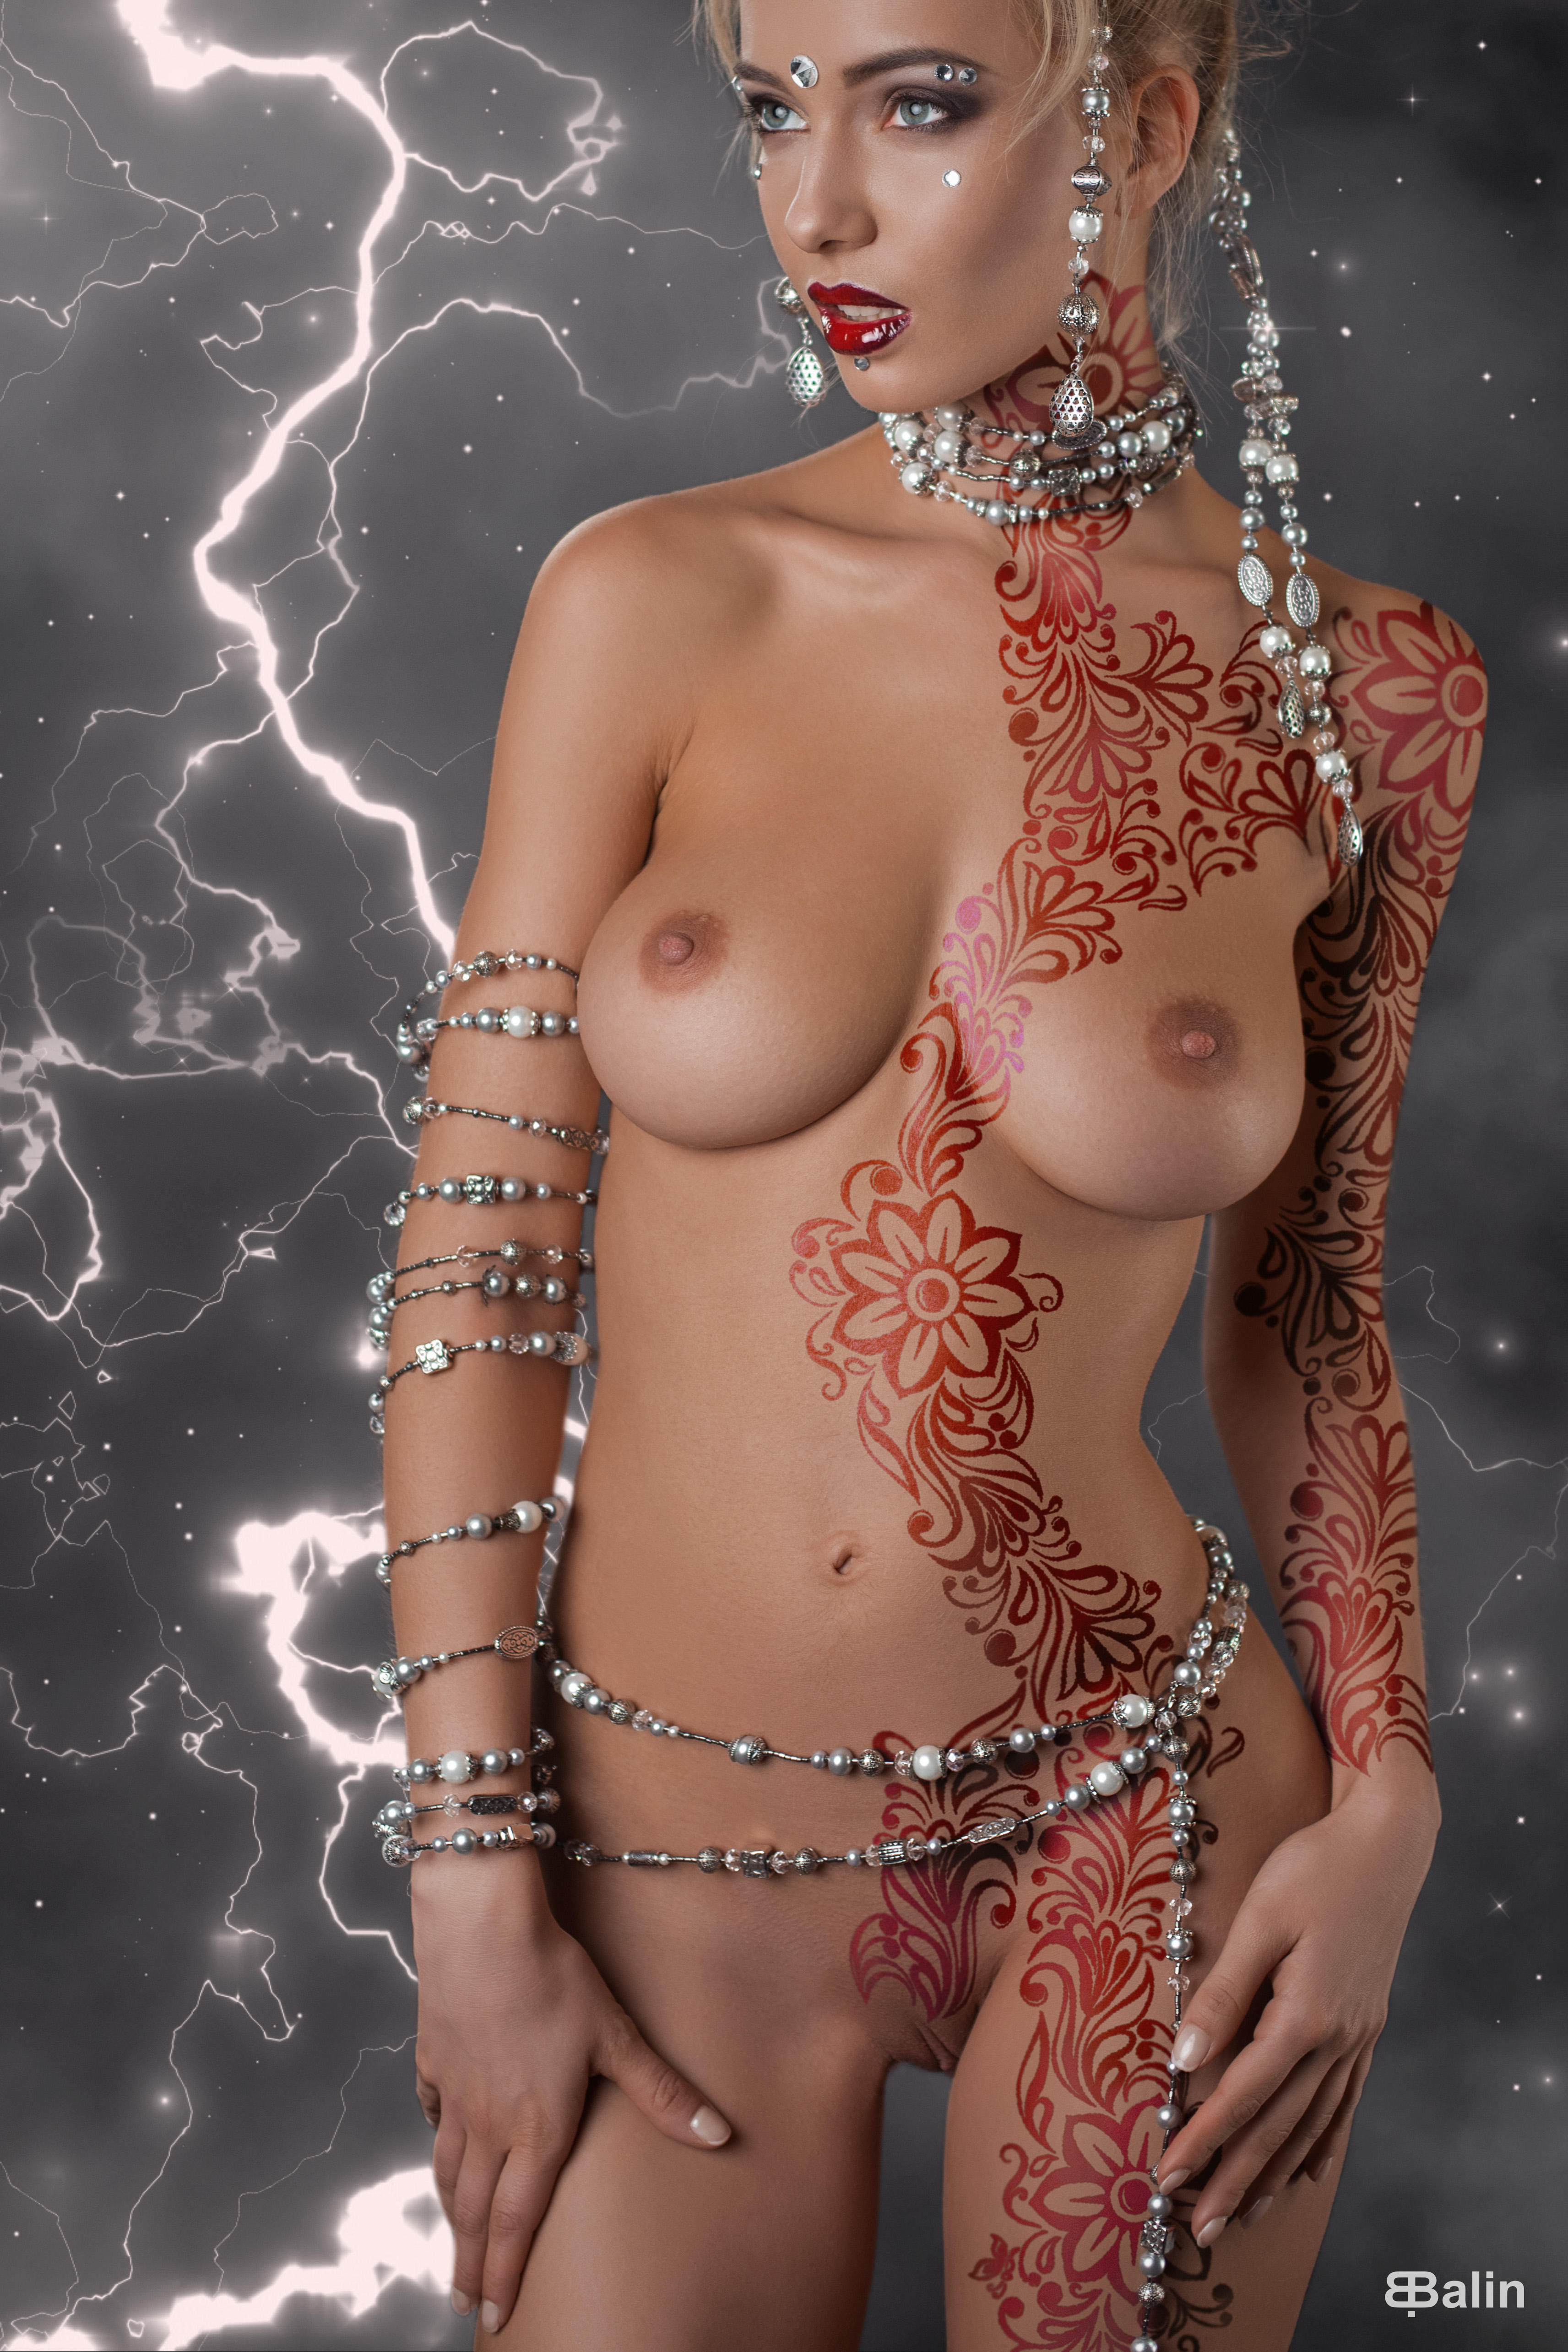 Nude girls wearing jewelry